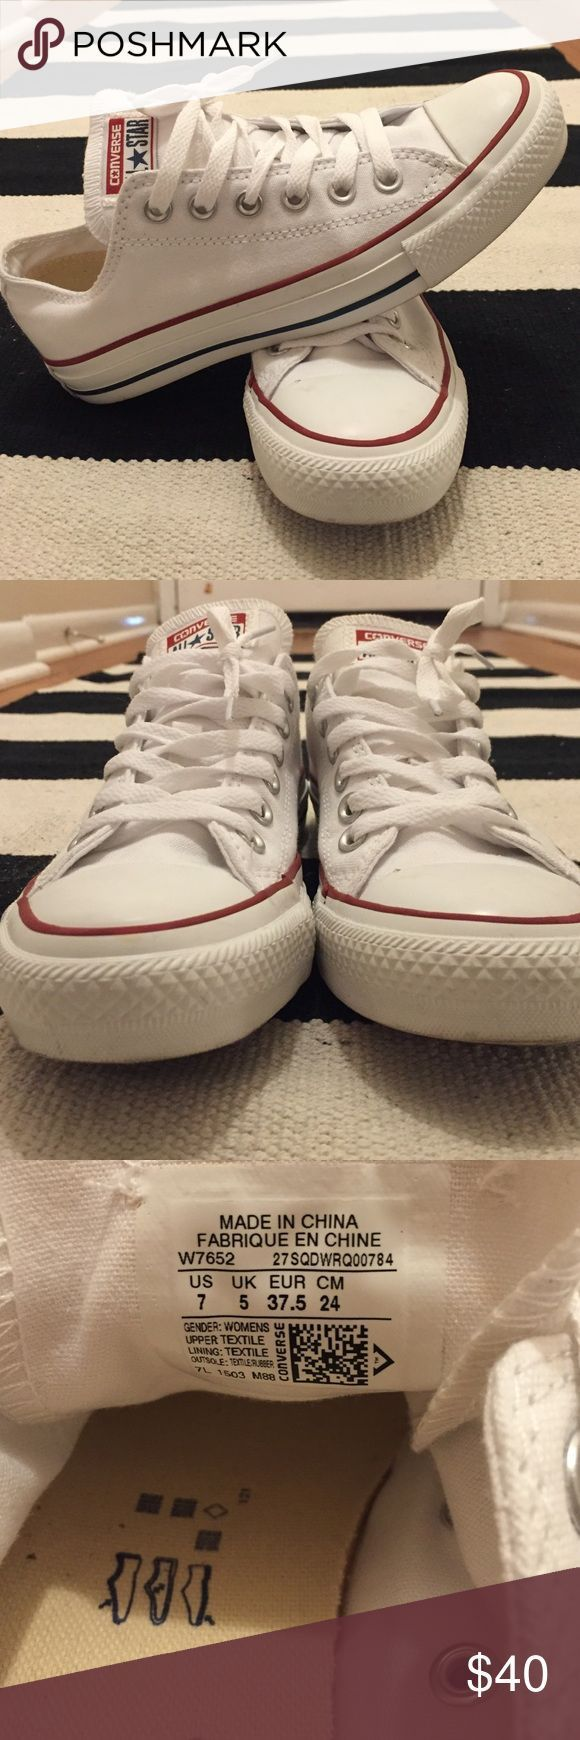 Tendance Basket 2017  White All Star Low-rise Converse White converse in great condition! Only worn a